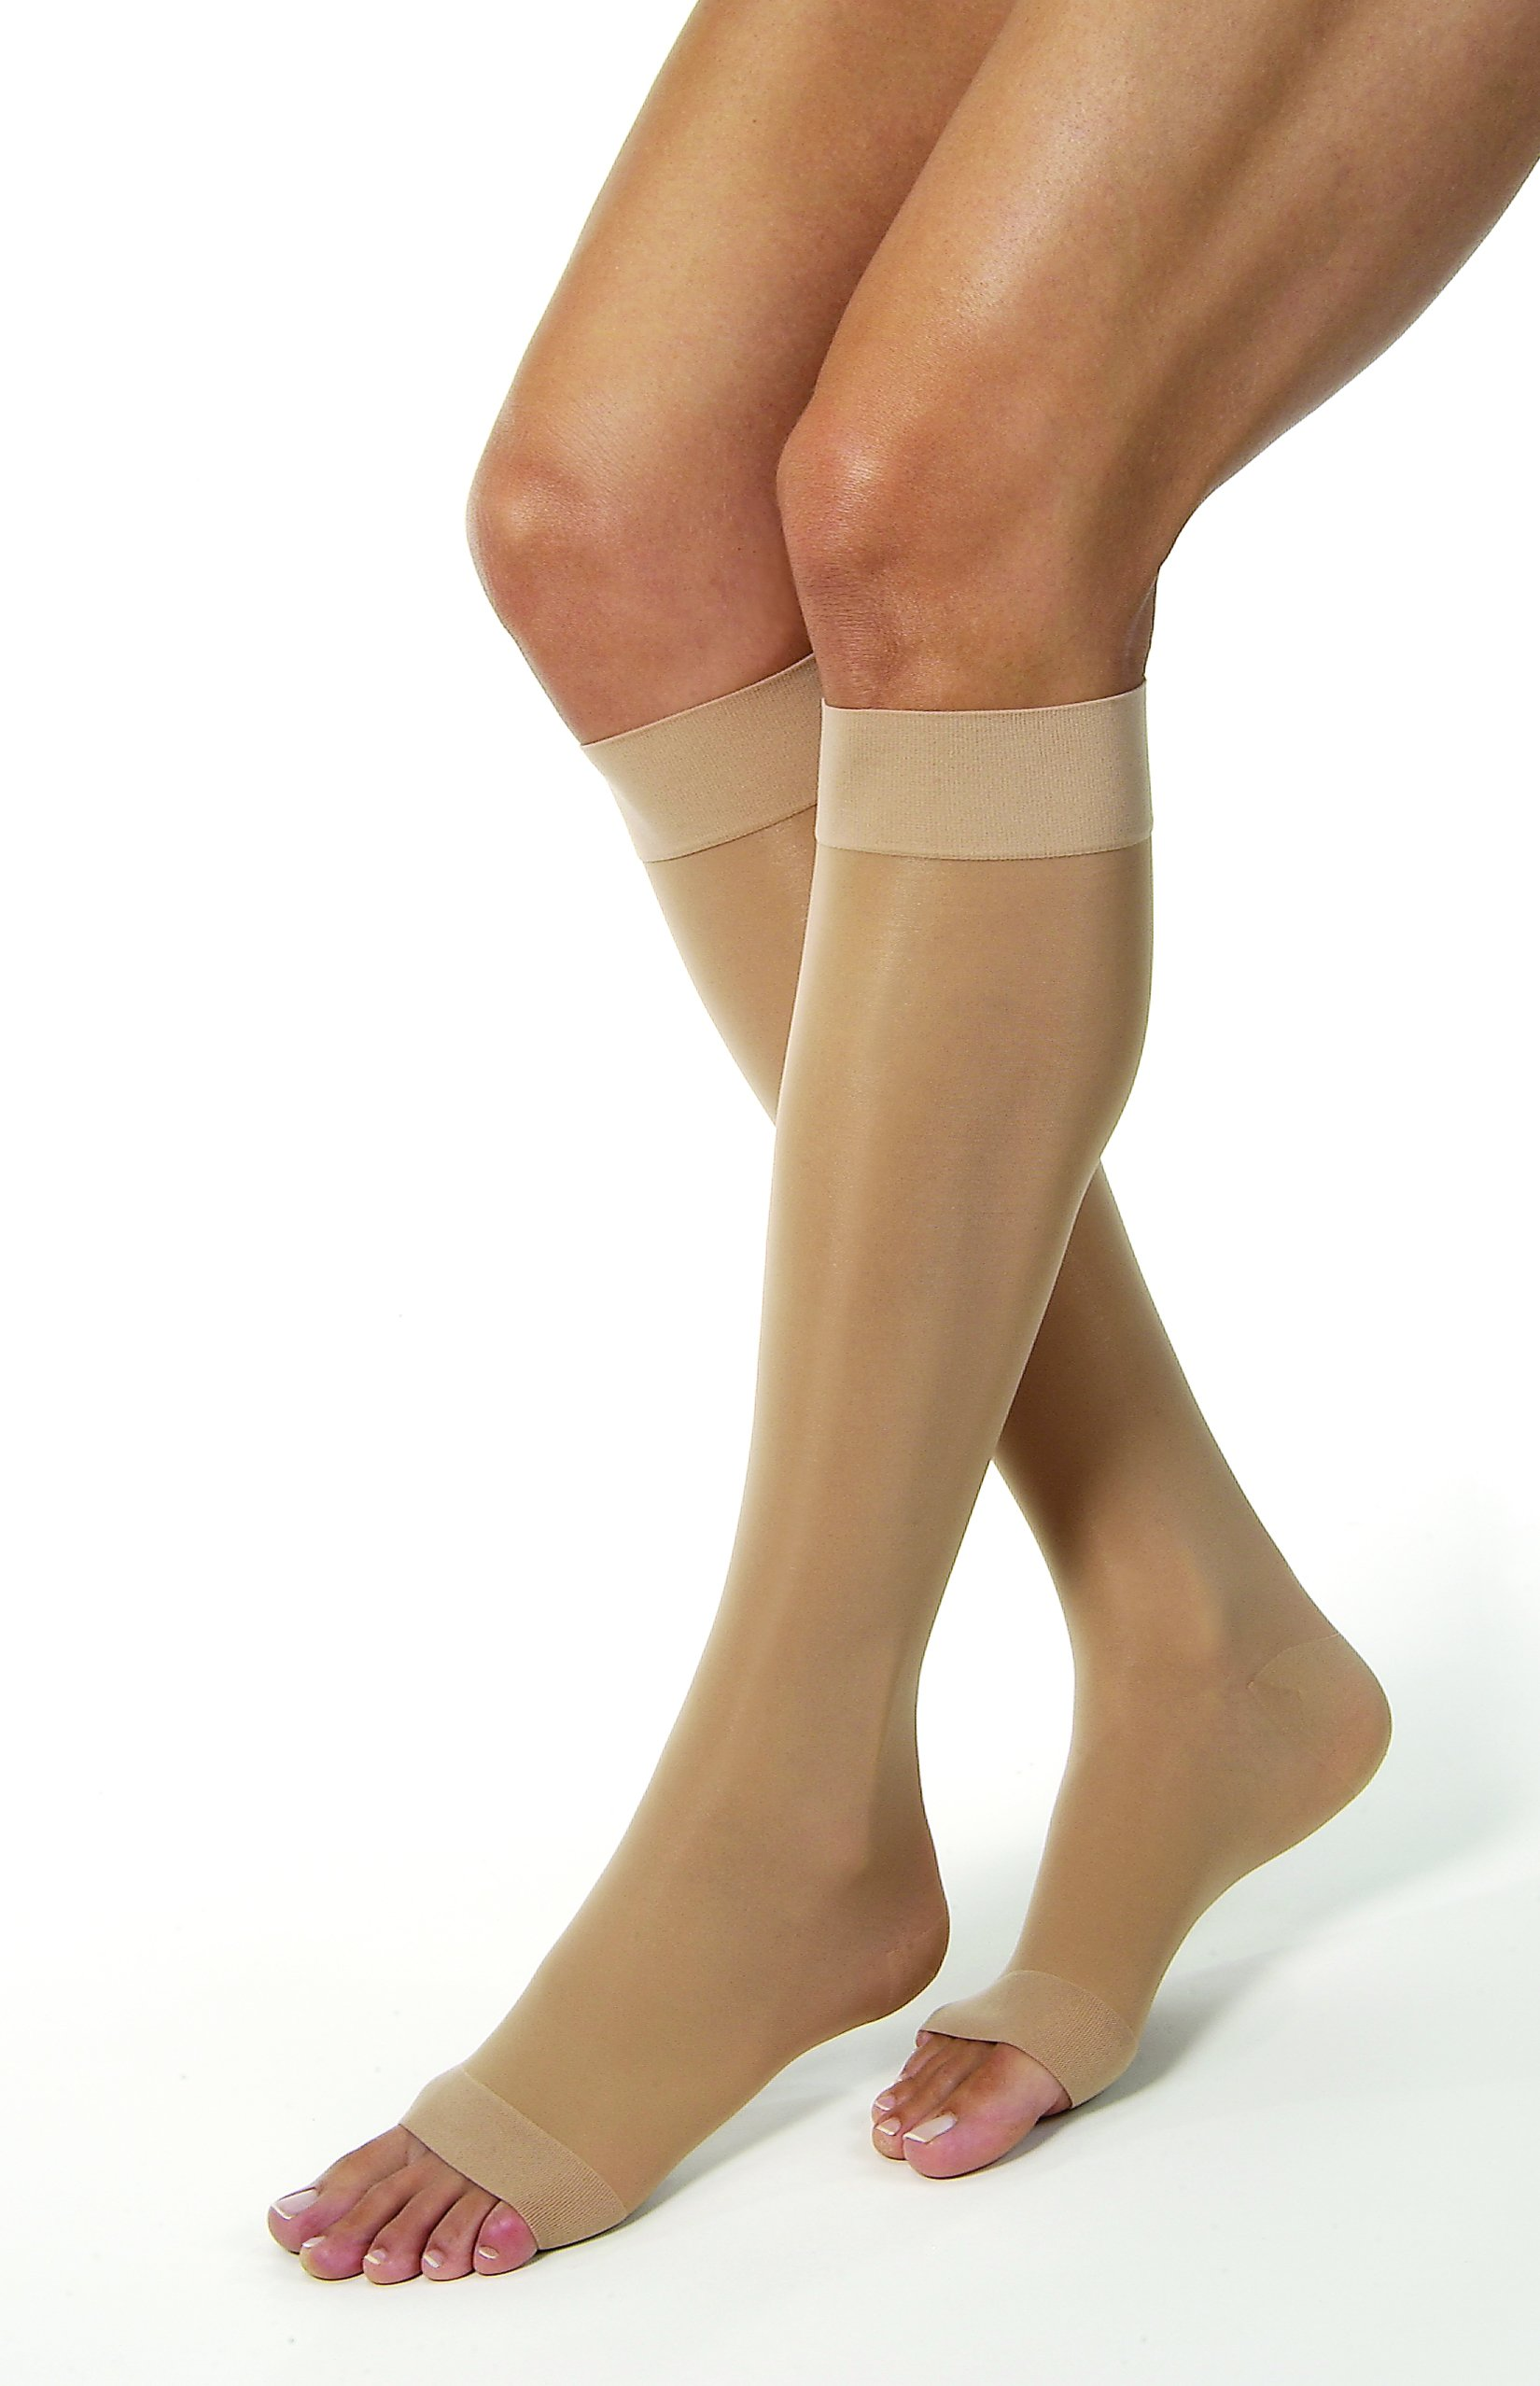 BSN Medical 119505 Jobst Compression Stocking, Knee High, Open Toe, 15-20 mmHG, X-Large, Natural